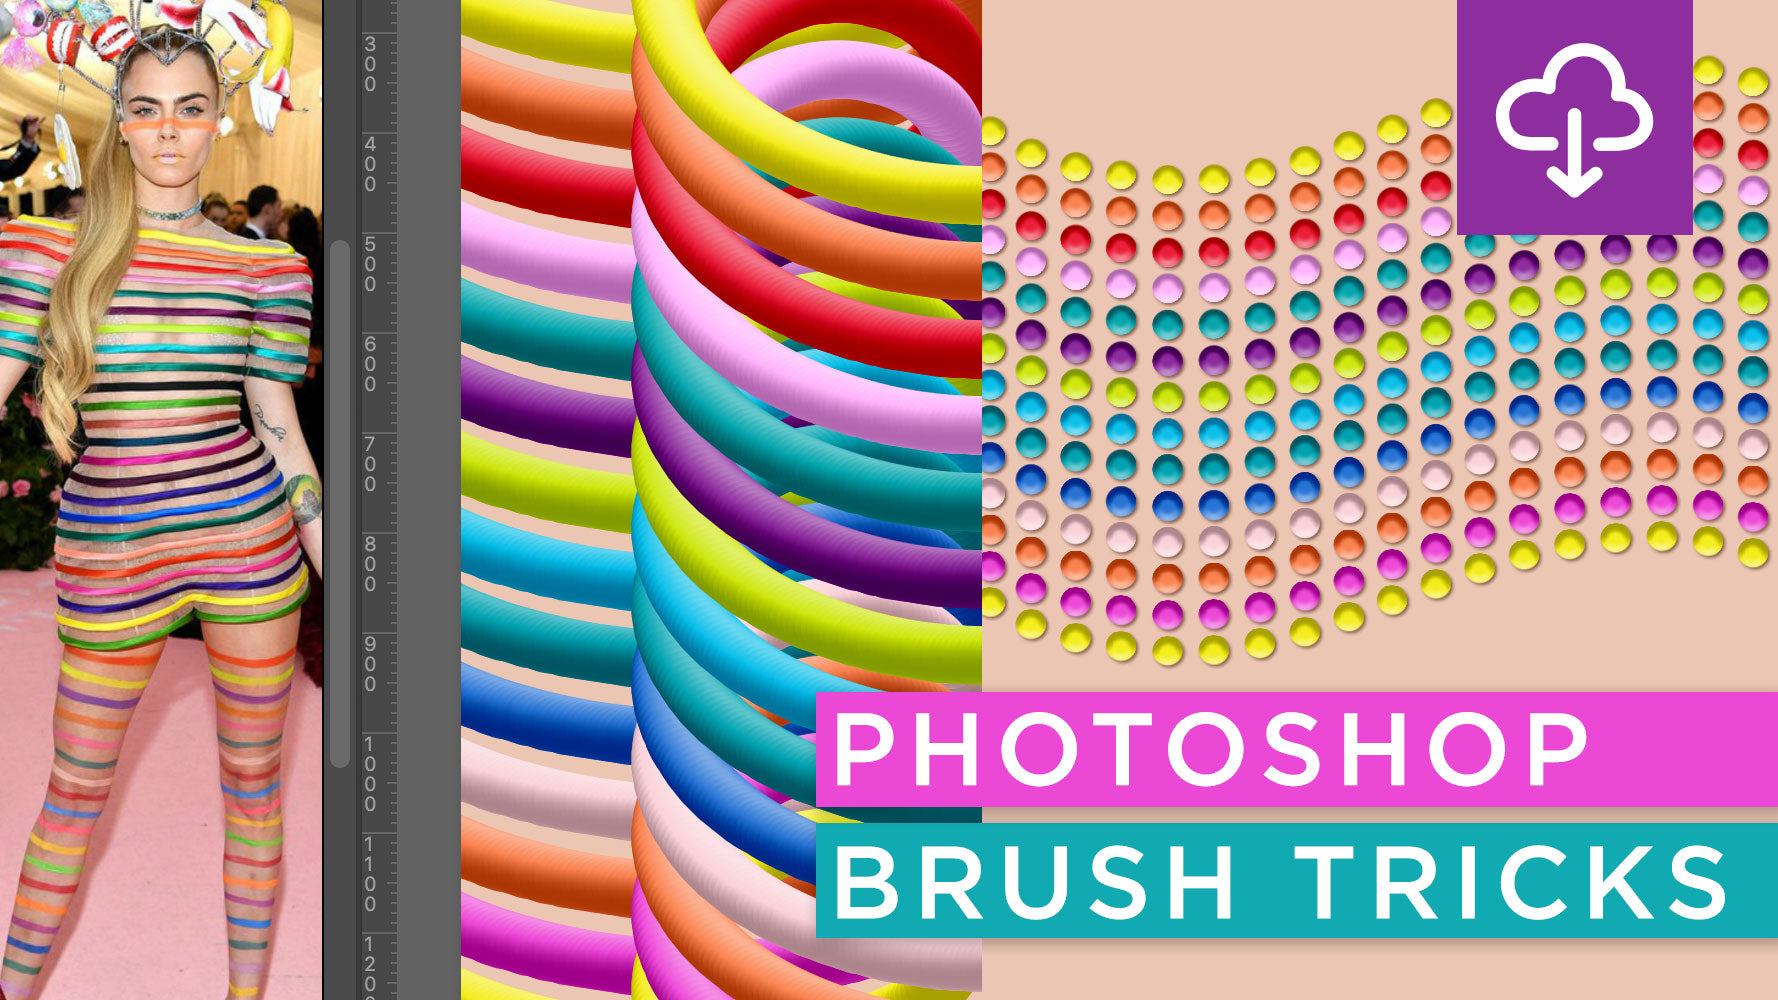 Photoshop Brush Tricks Tutorial: Dimensional Rainbow Brushes Inspired by Met Gala Couture